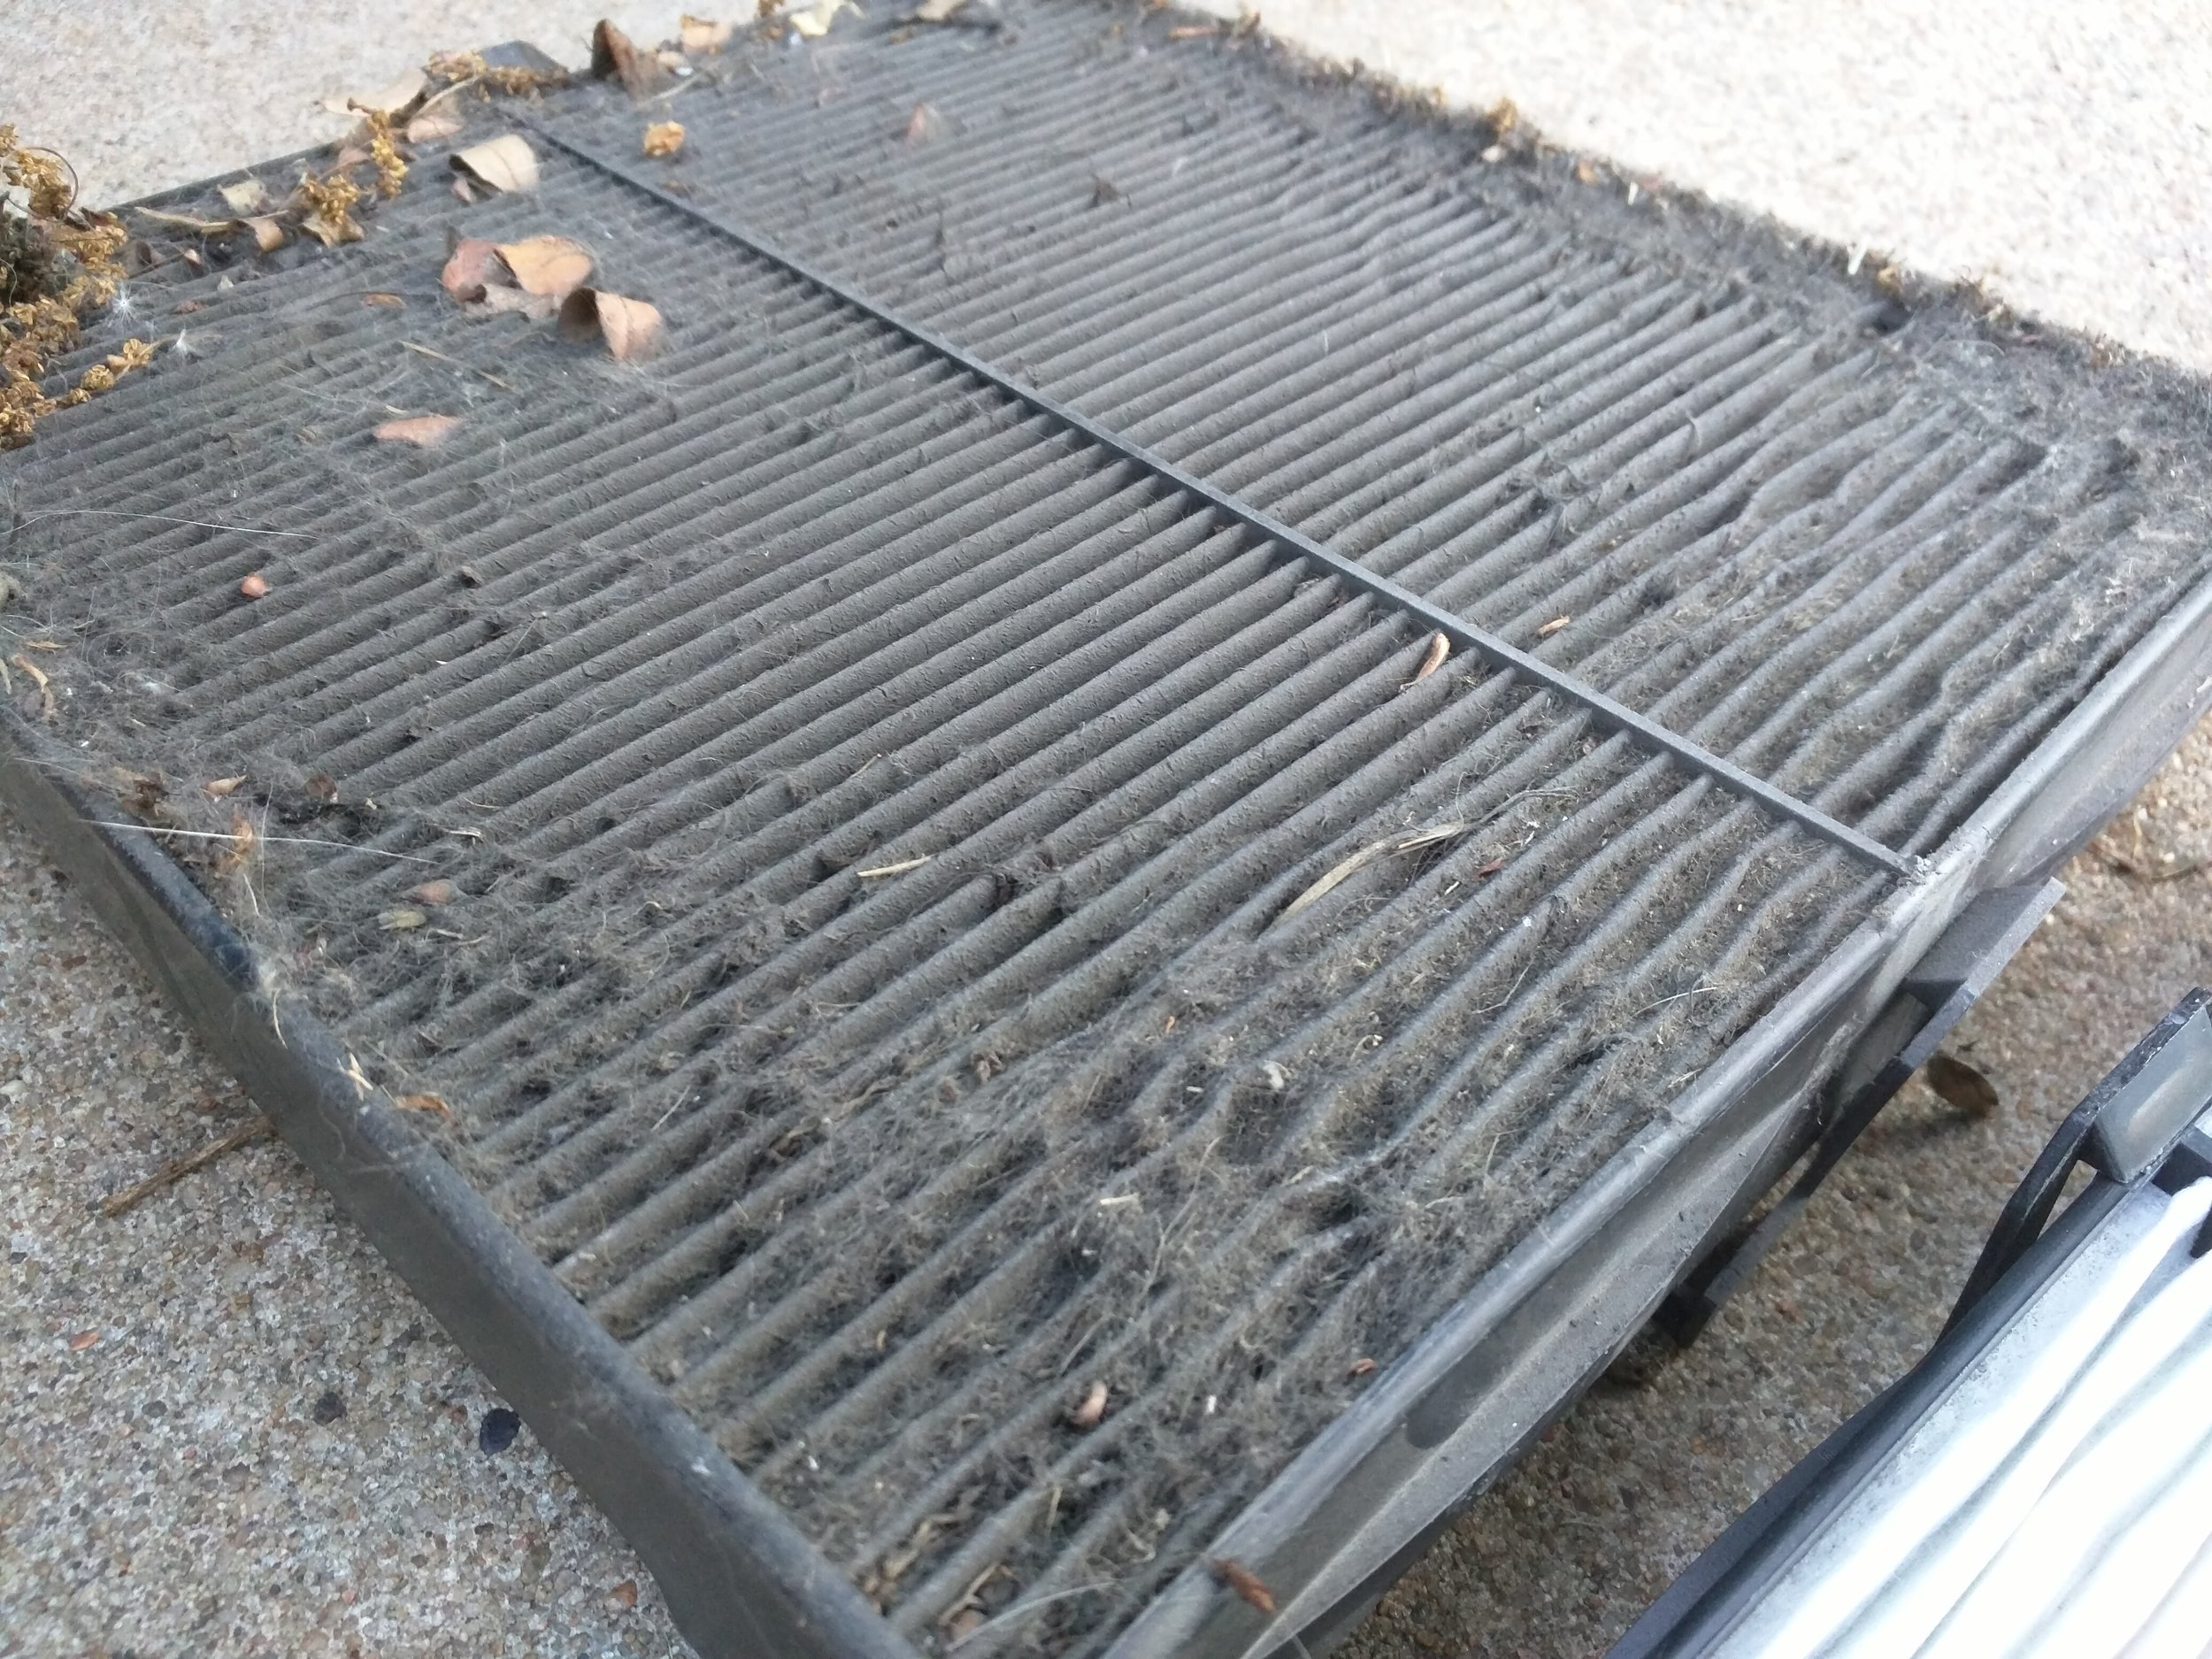 This is my ridiculous cabin filter from the first week of owning my Forester. I am 99% sure it was never changed over the 196k miles before I bought the car.